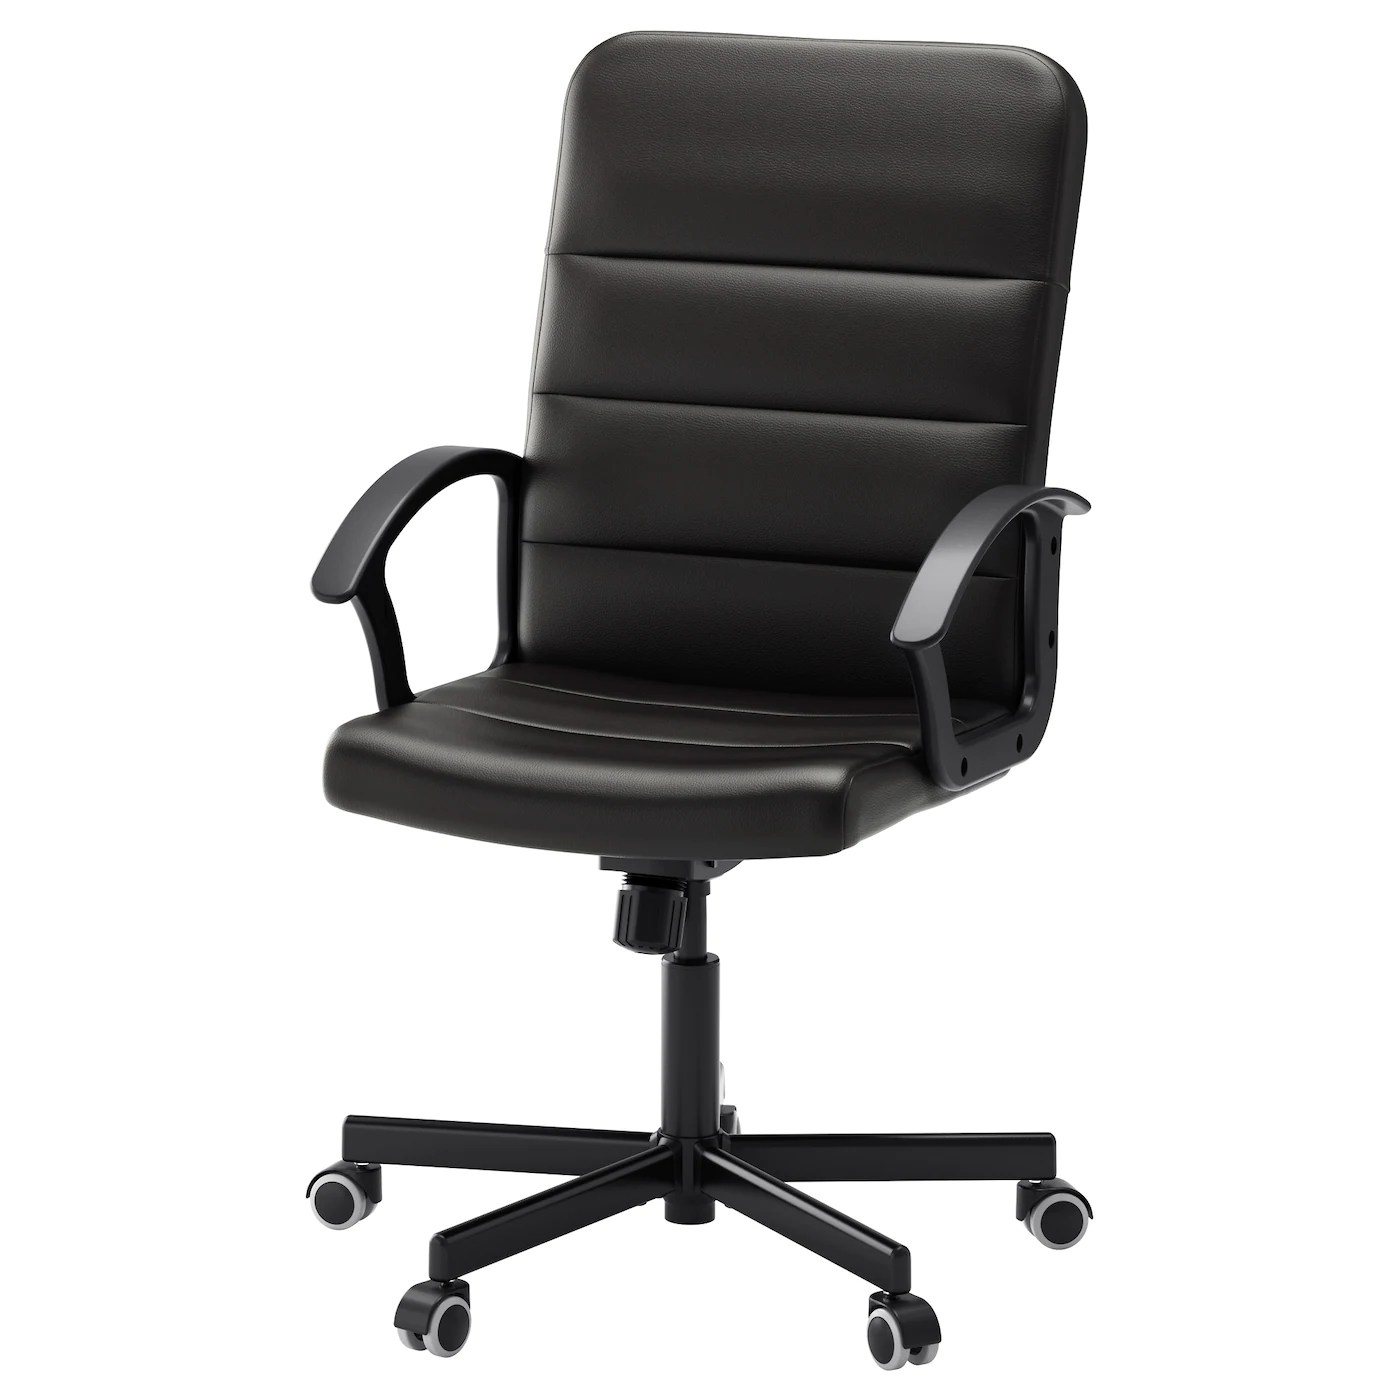 ikea swivel chair chairs for back pain torkel bomstad black